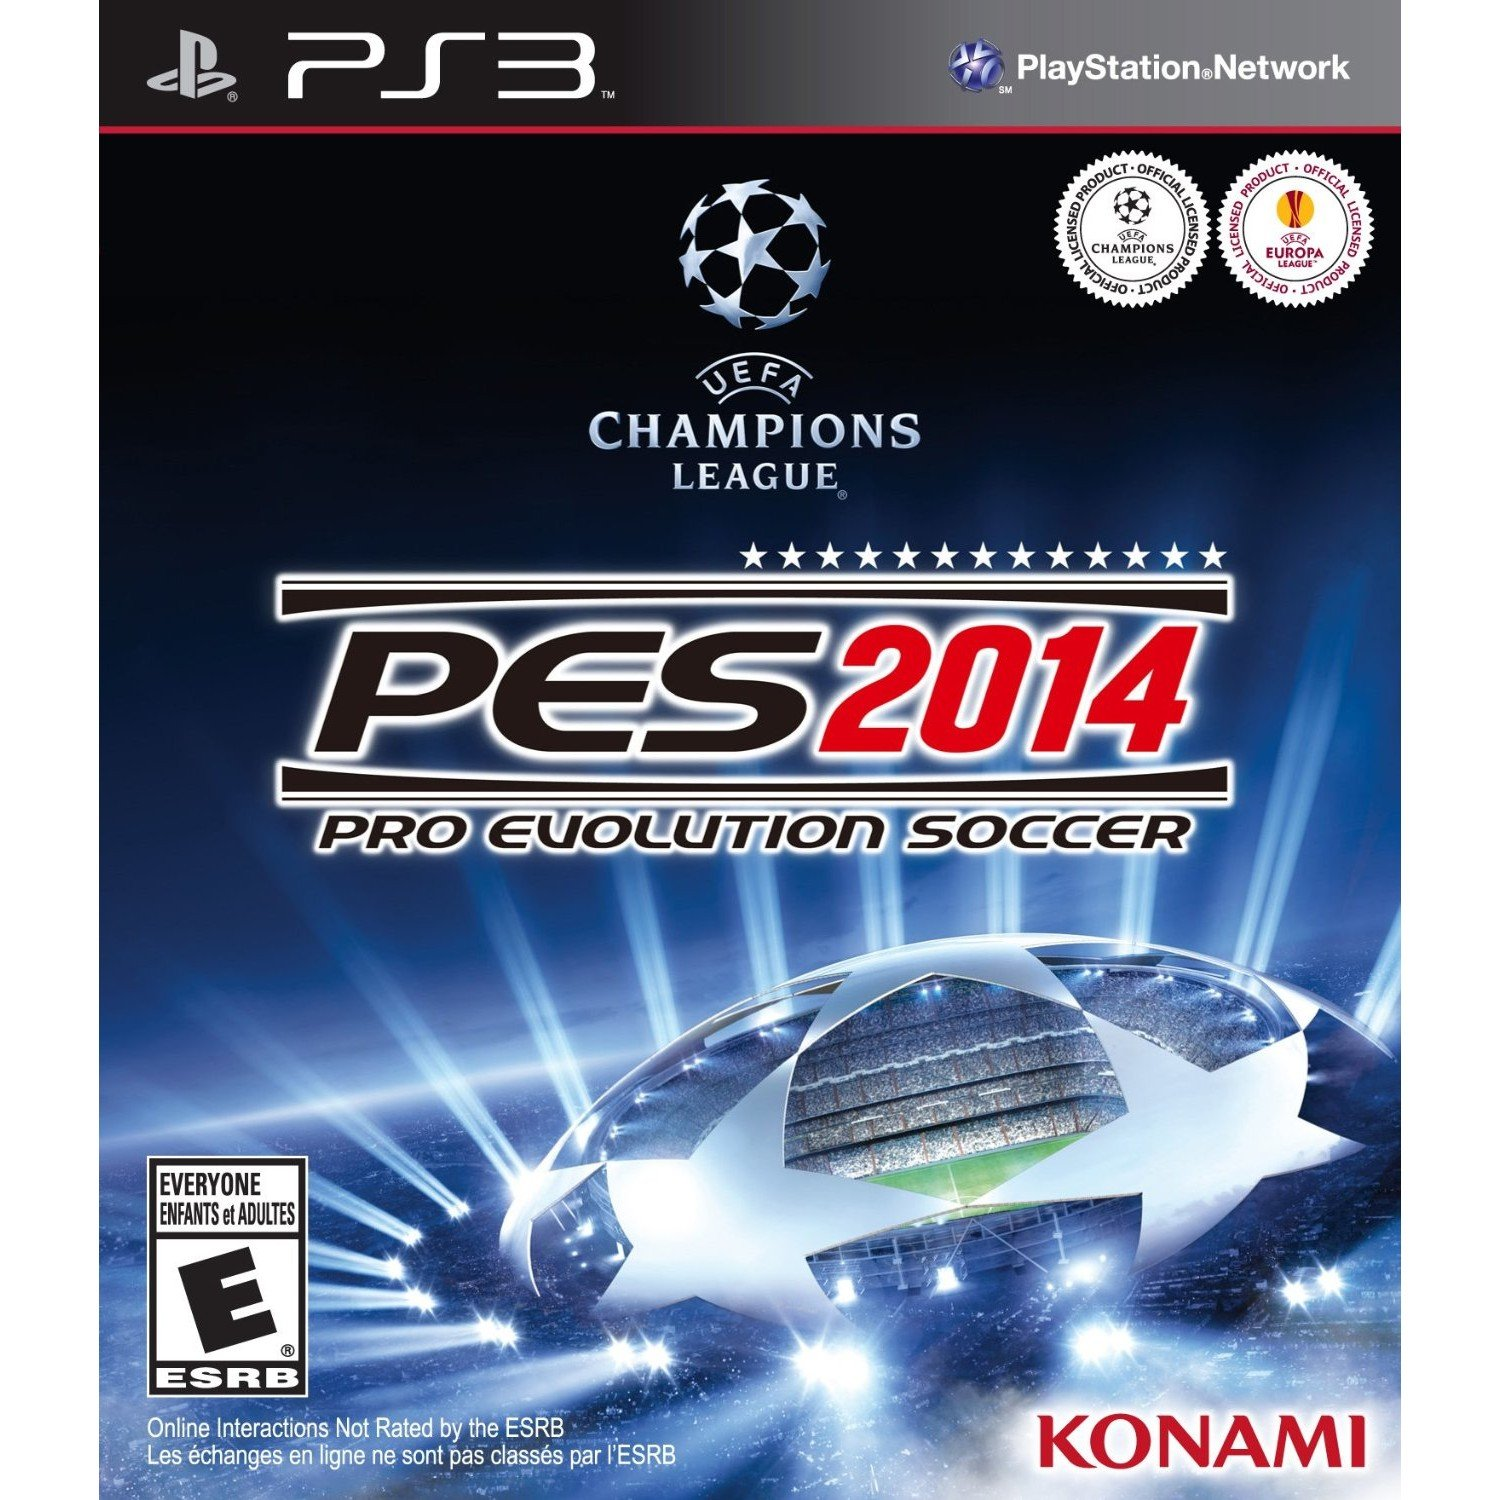 Pro Evolution Soccer 2014 (PS3) Review 3